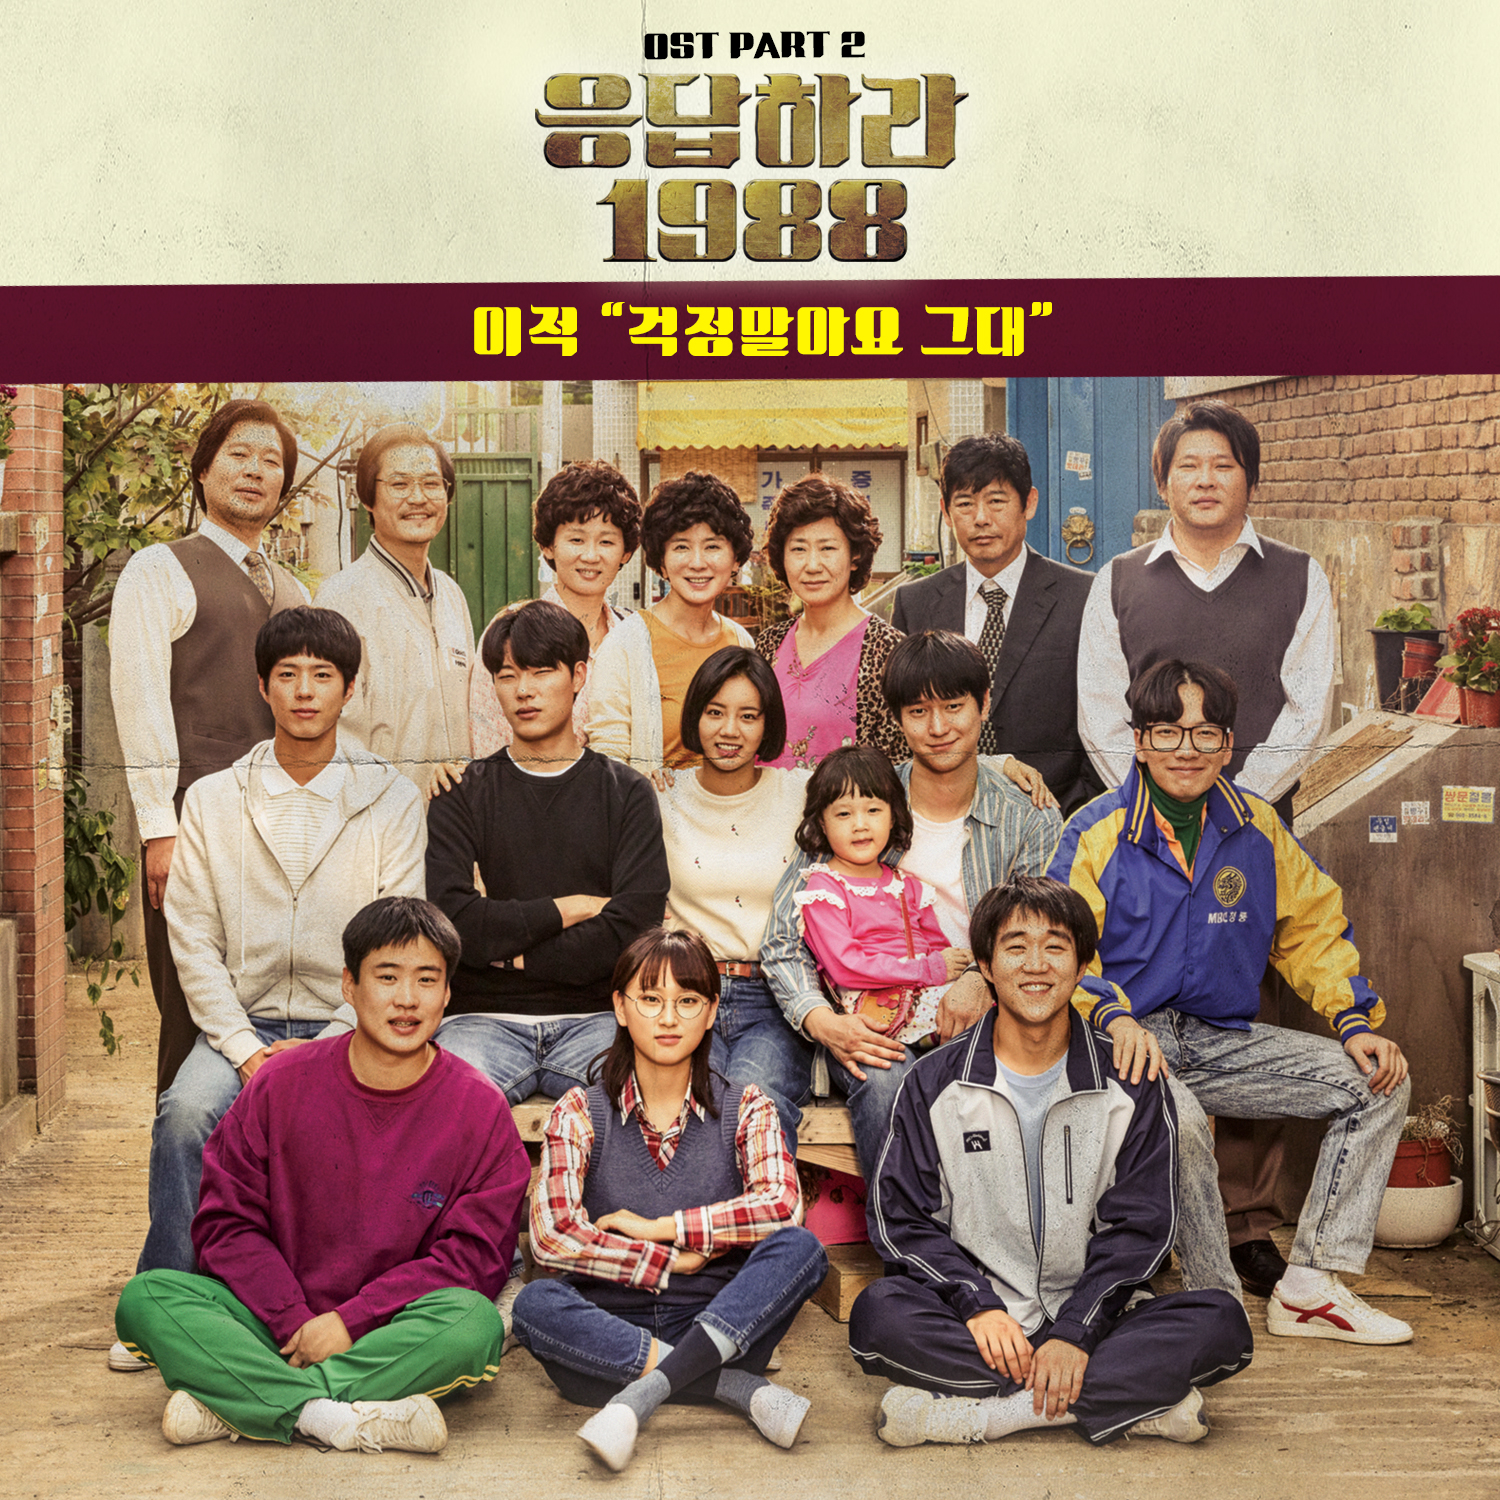 Lee Juck - Reply 1988 OST Part.2 - Don't Worry K2Ost free mp3 download korean song kpop kdrama ost lyric 320 kbps